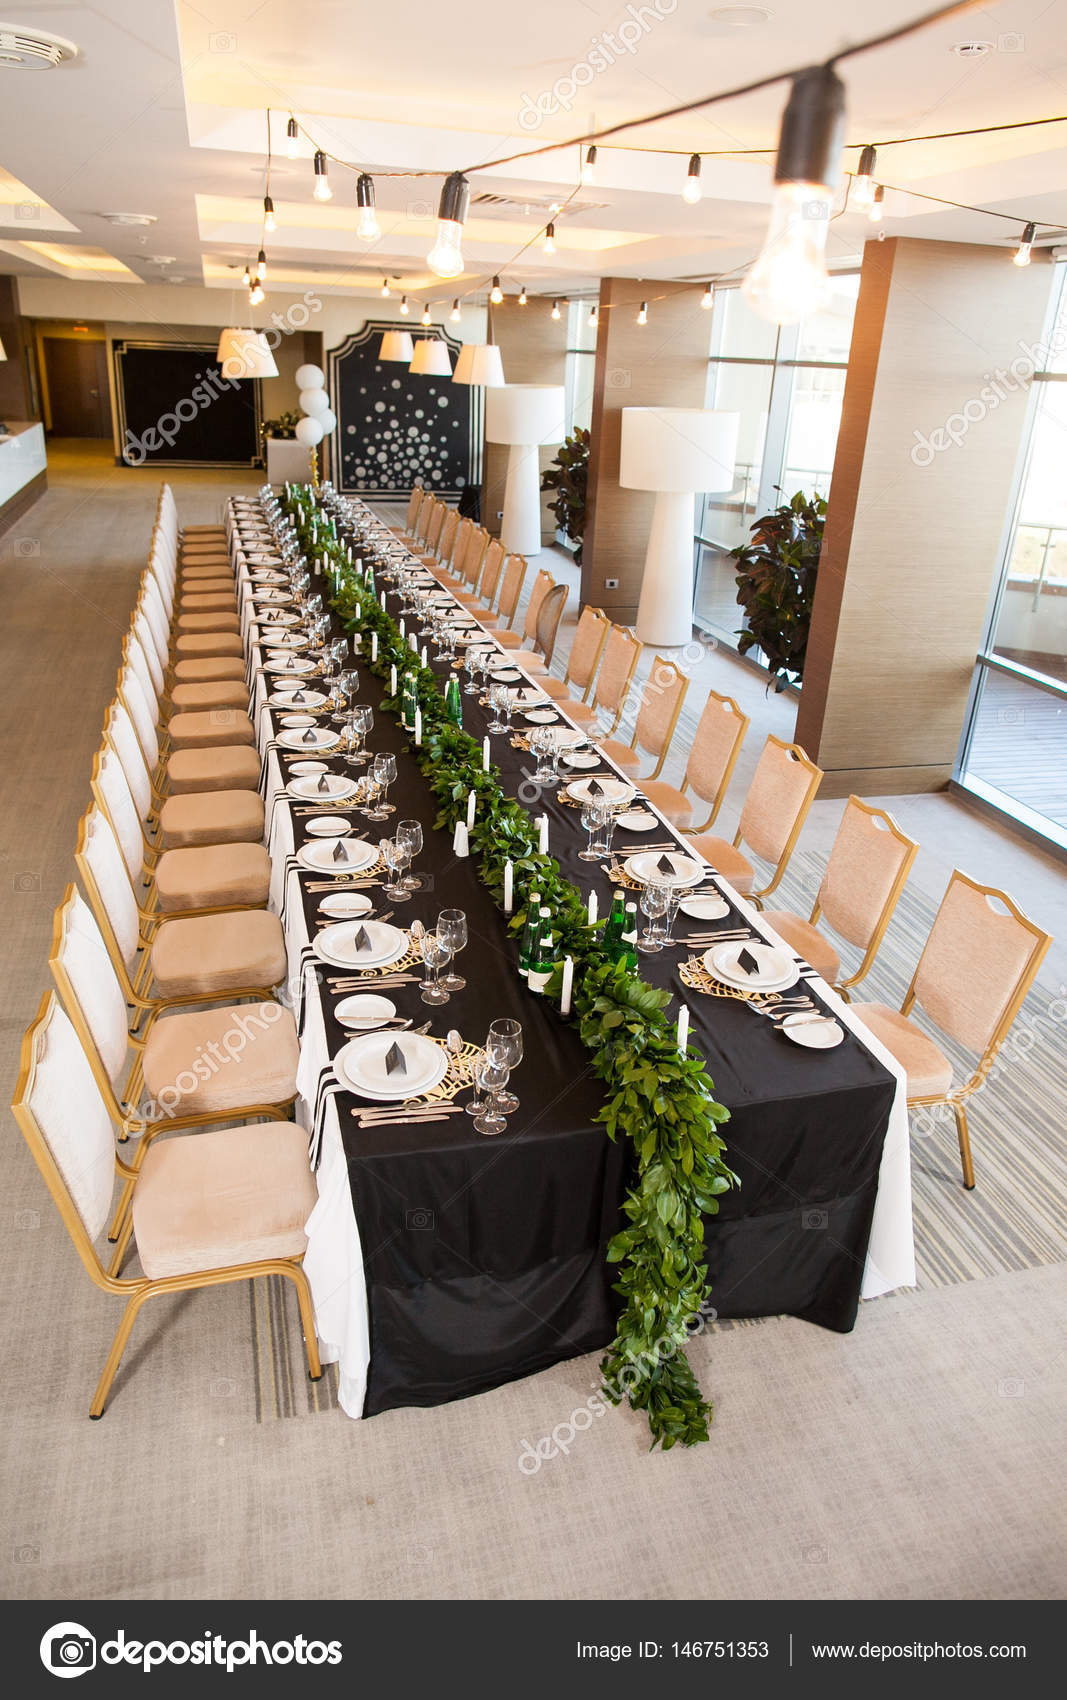 Wedding Decor, Interior. Concept Of Festive Table Decor. Table Layout.  Restaurant Interior